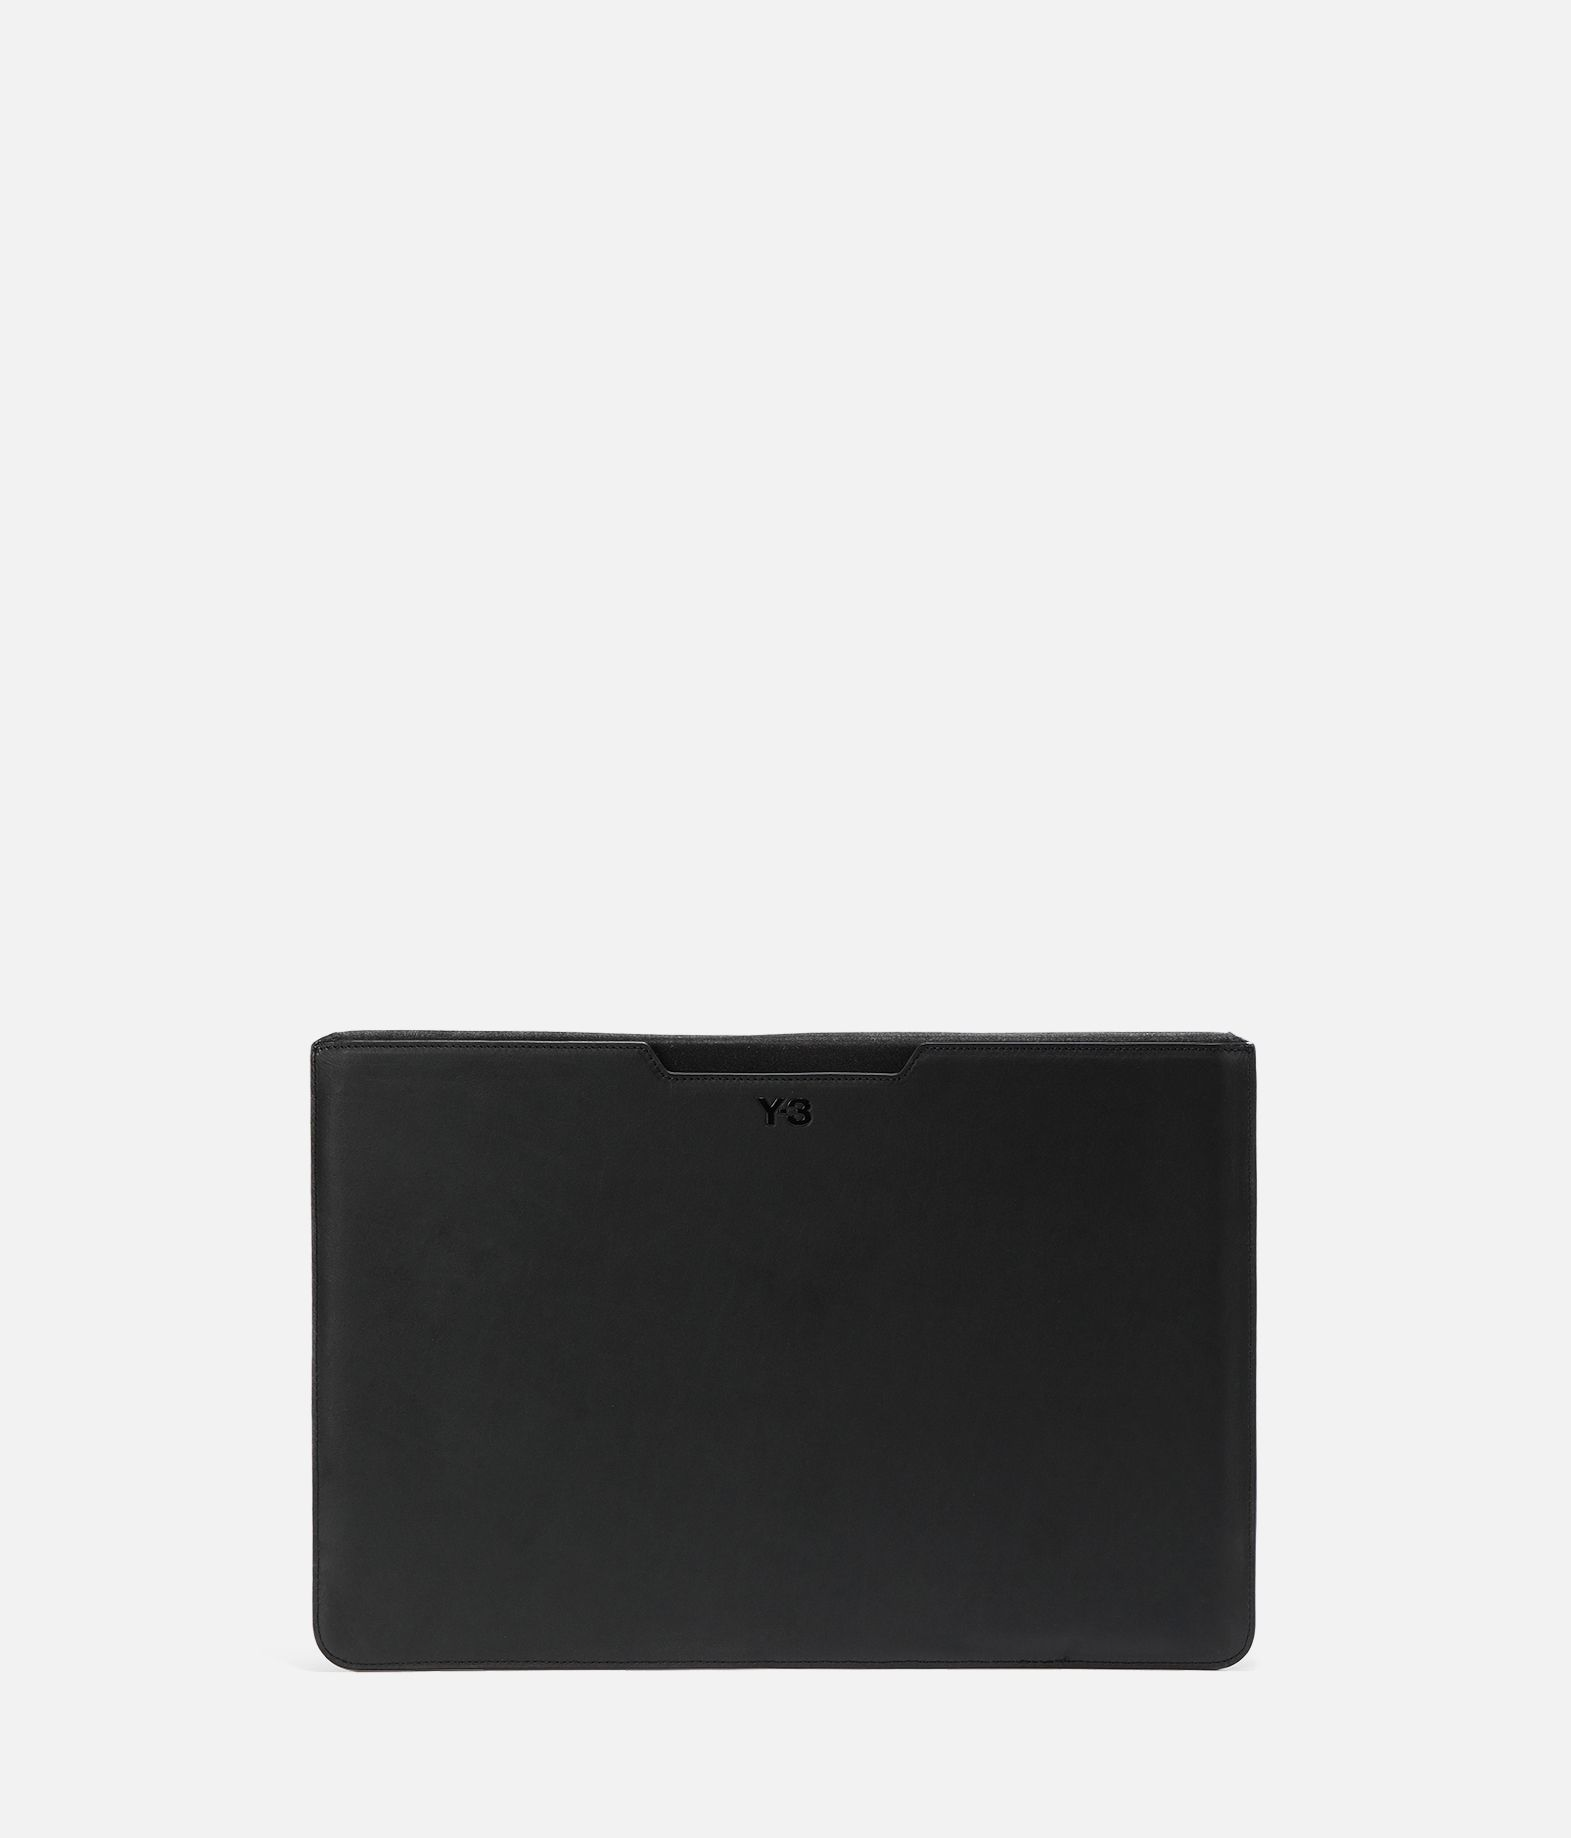 "Y-3 Y-3 Laptop Sleeve 15"" Laptop Sleeve E d"